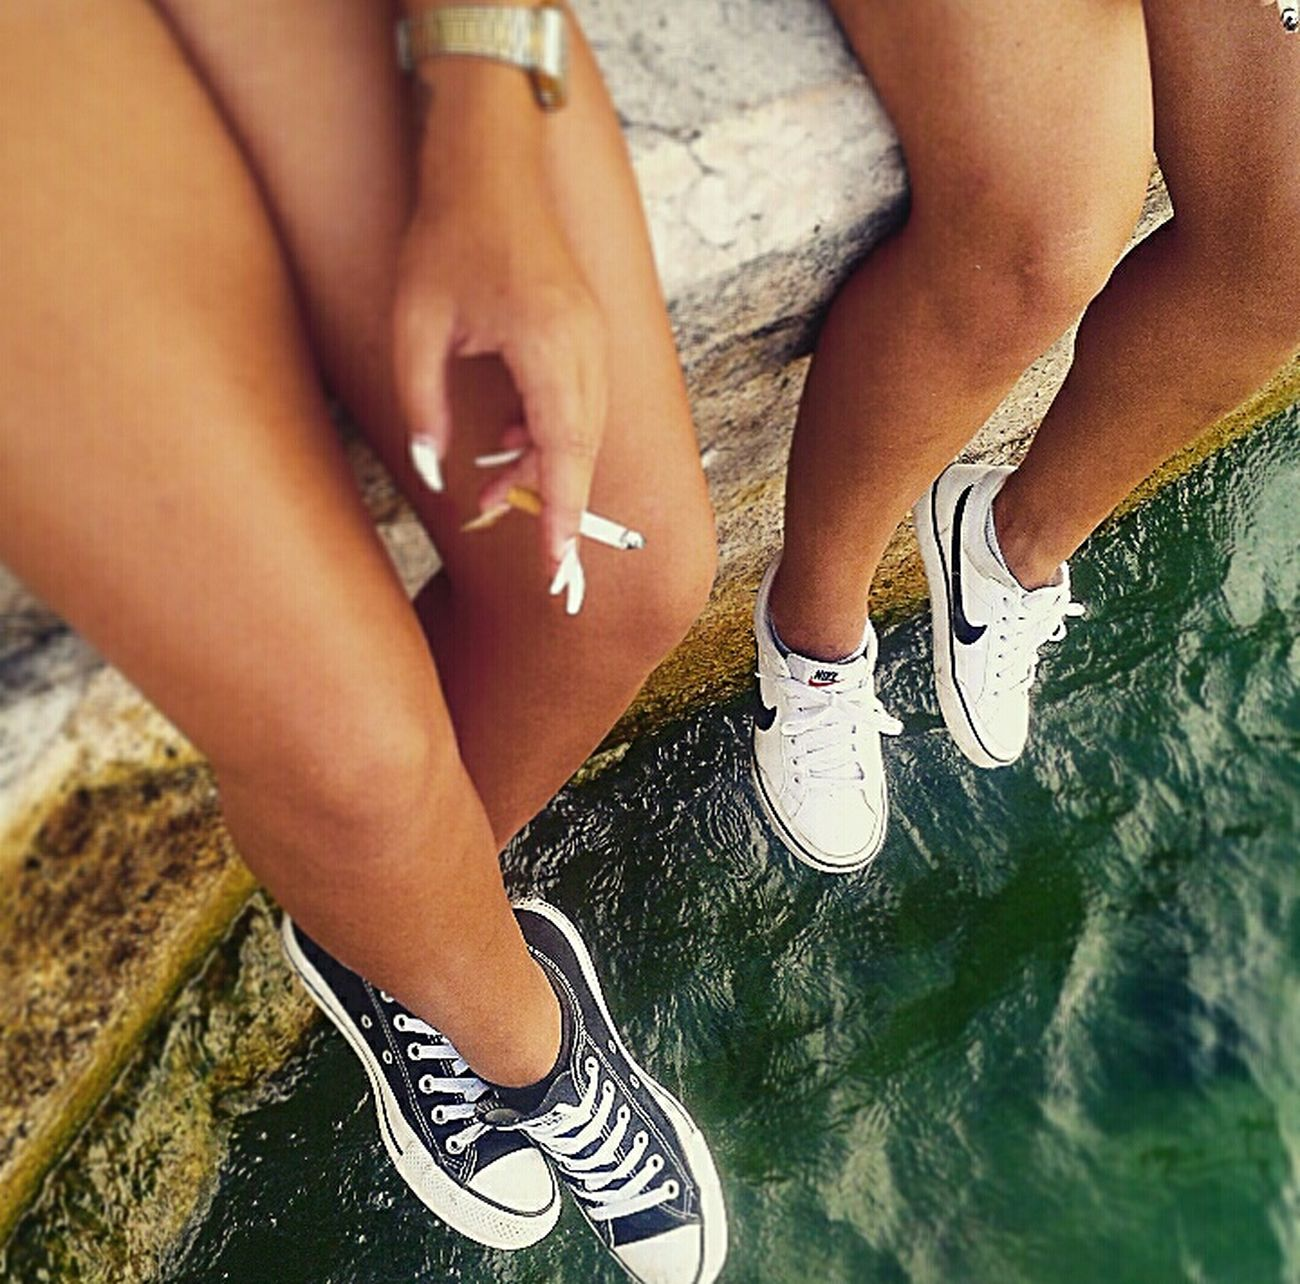 Italy Italia Gardasee Holiday Hello World Smoke Cigarette  Hanging Out Chilling Chillin' Chucks Blackandwhite Sister Sisterlove❤ Relaxing Lifestyle